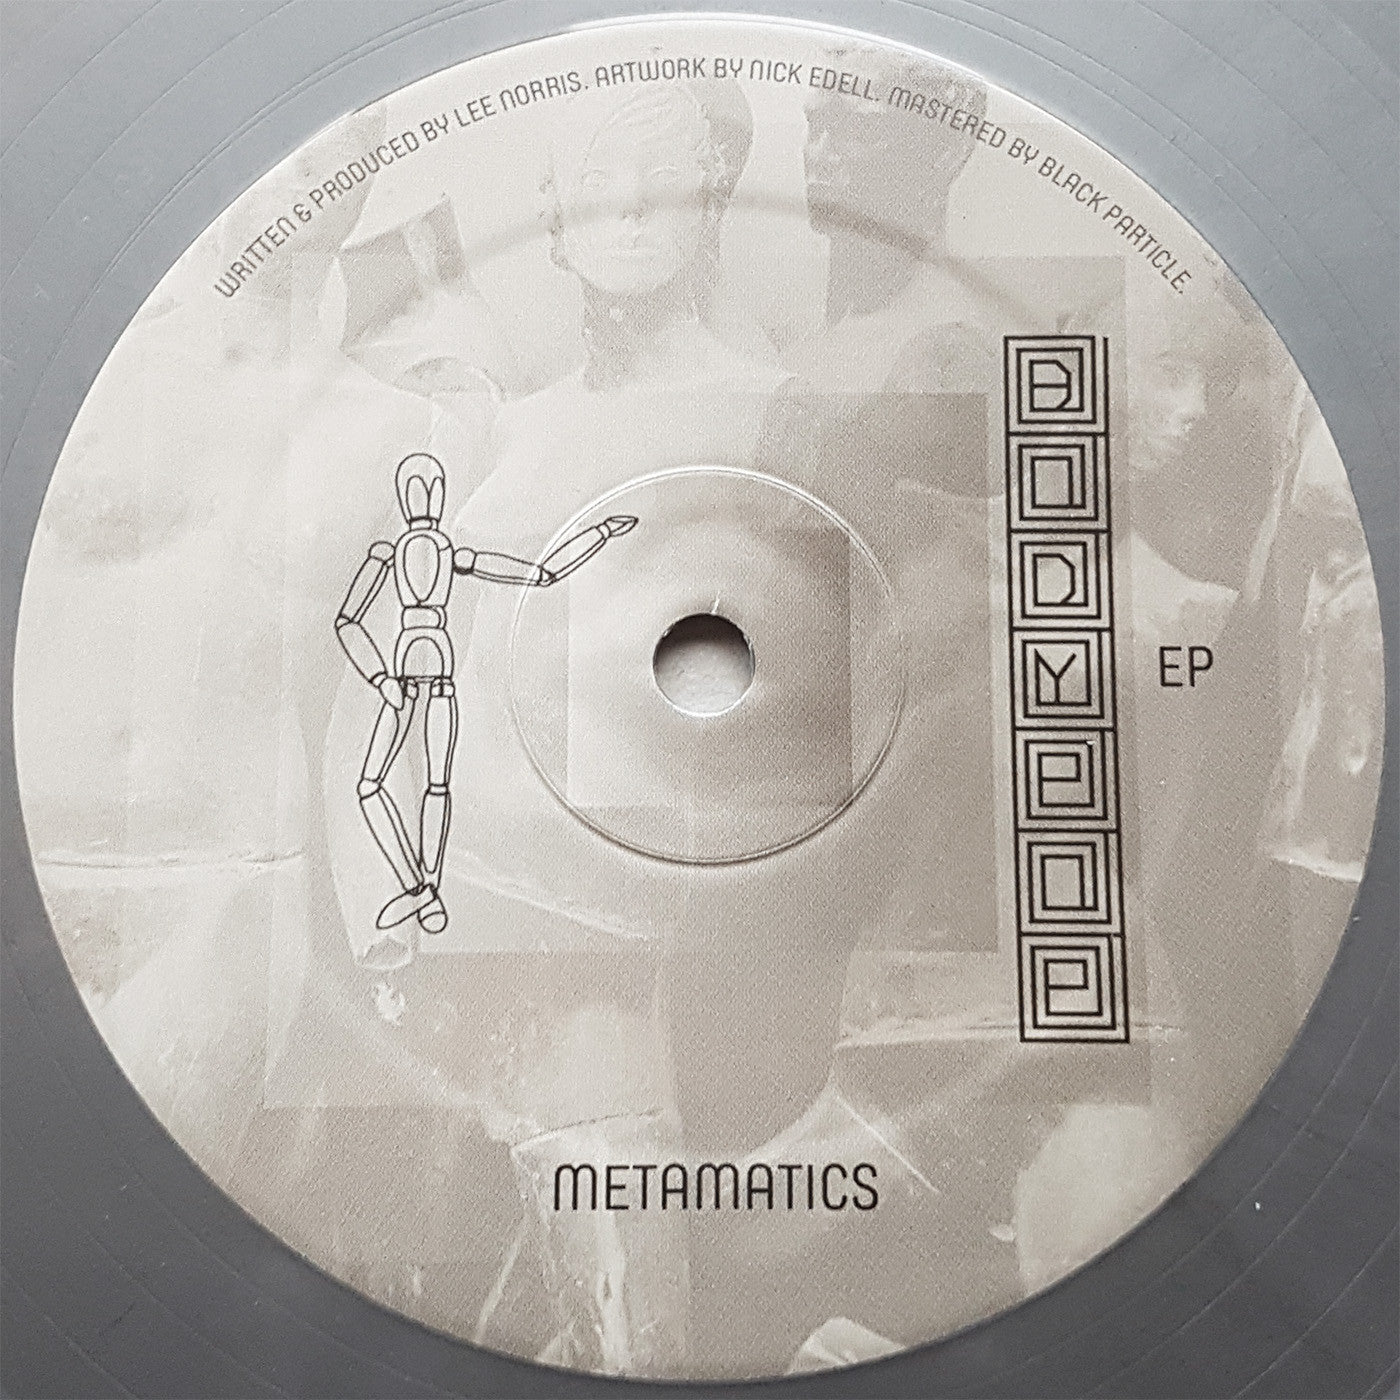 Metamatics - Bodypop EP , Vinyl - Shipwrec, Unearthed Sounds